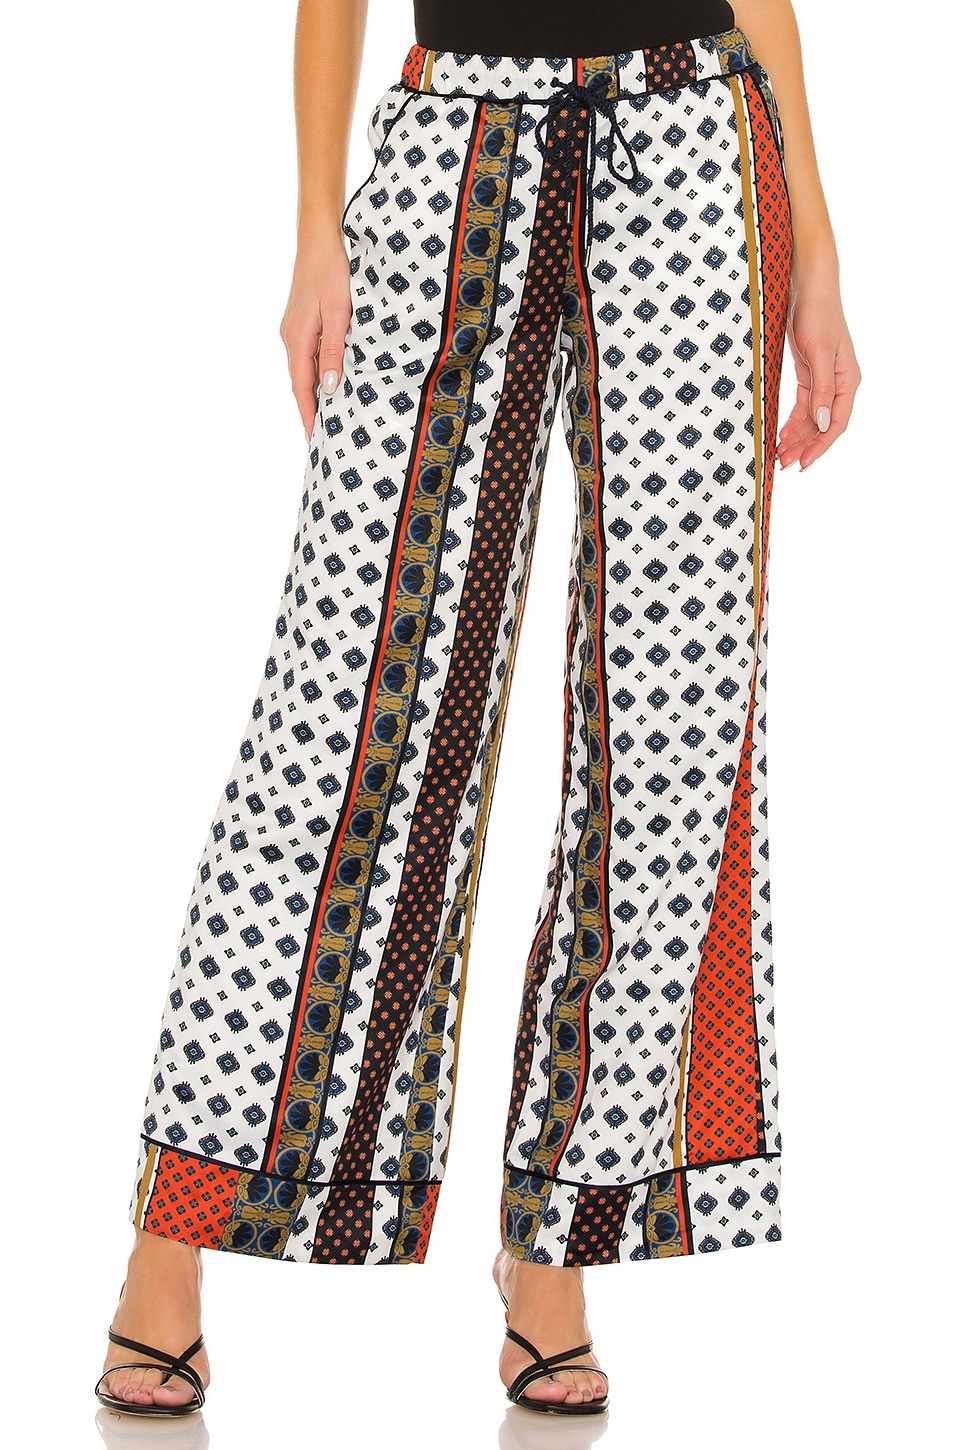 House of Harlow 1960 x REVOLVE Joni Pant in Ivory Pajama Print